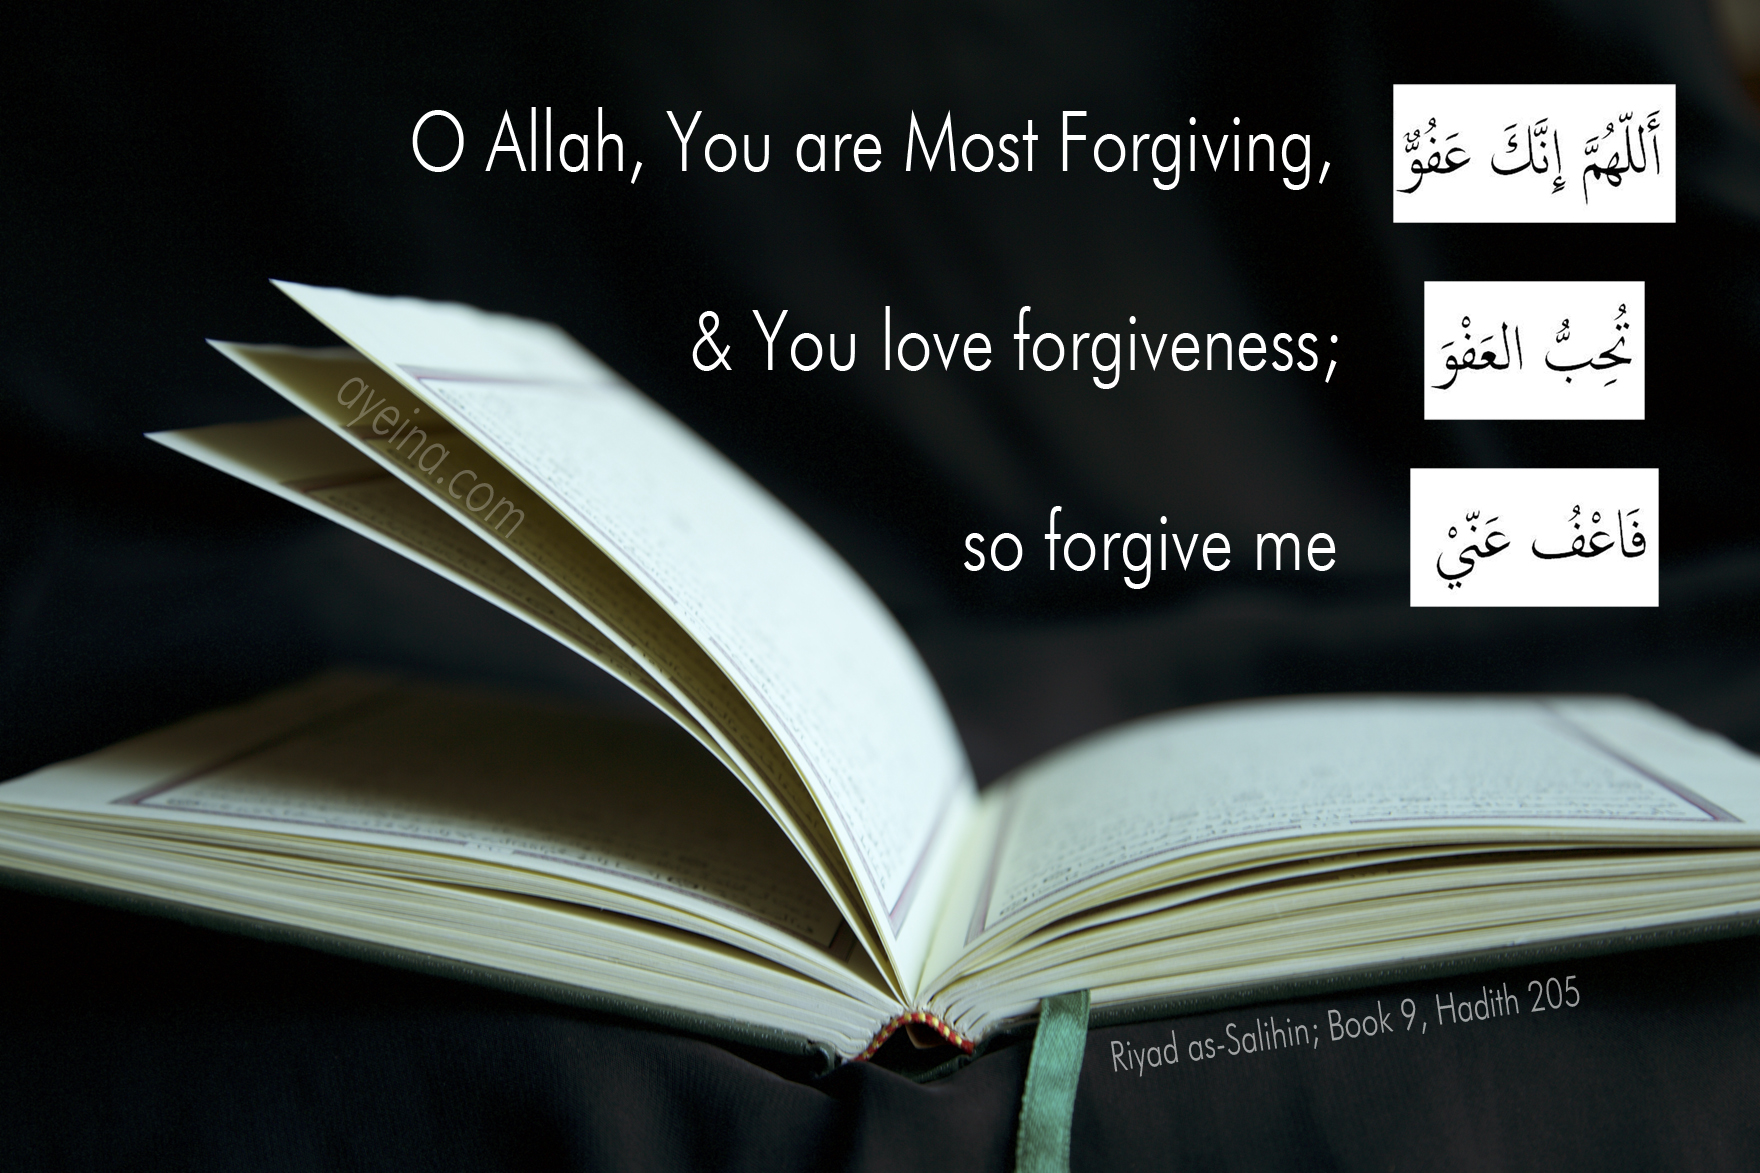 Allahumma innaka 'afuwwun, tuhibbul-'afwa, fa'fu 'anni O Allah, You are Most Forgiving, and You love forgiveness; so forgive me, free dua list printable, dua diary, productivity journal, dua journal, gratitude journal, dua, complete list of duas in Quran, Secrets of an Accepted Dua, rayeesa tabassum, guest writer, make dua for others, best times to make dua, reference of ahadith, Visionaire Online, dream duas, effective supplications, masnoon duas, doa, supplicate to Allah, Ya Allah, du'aa